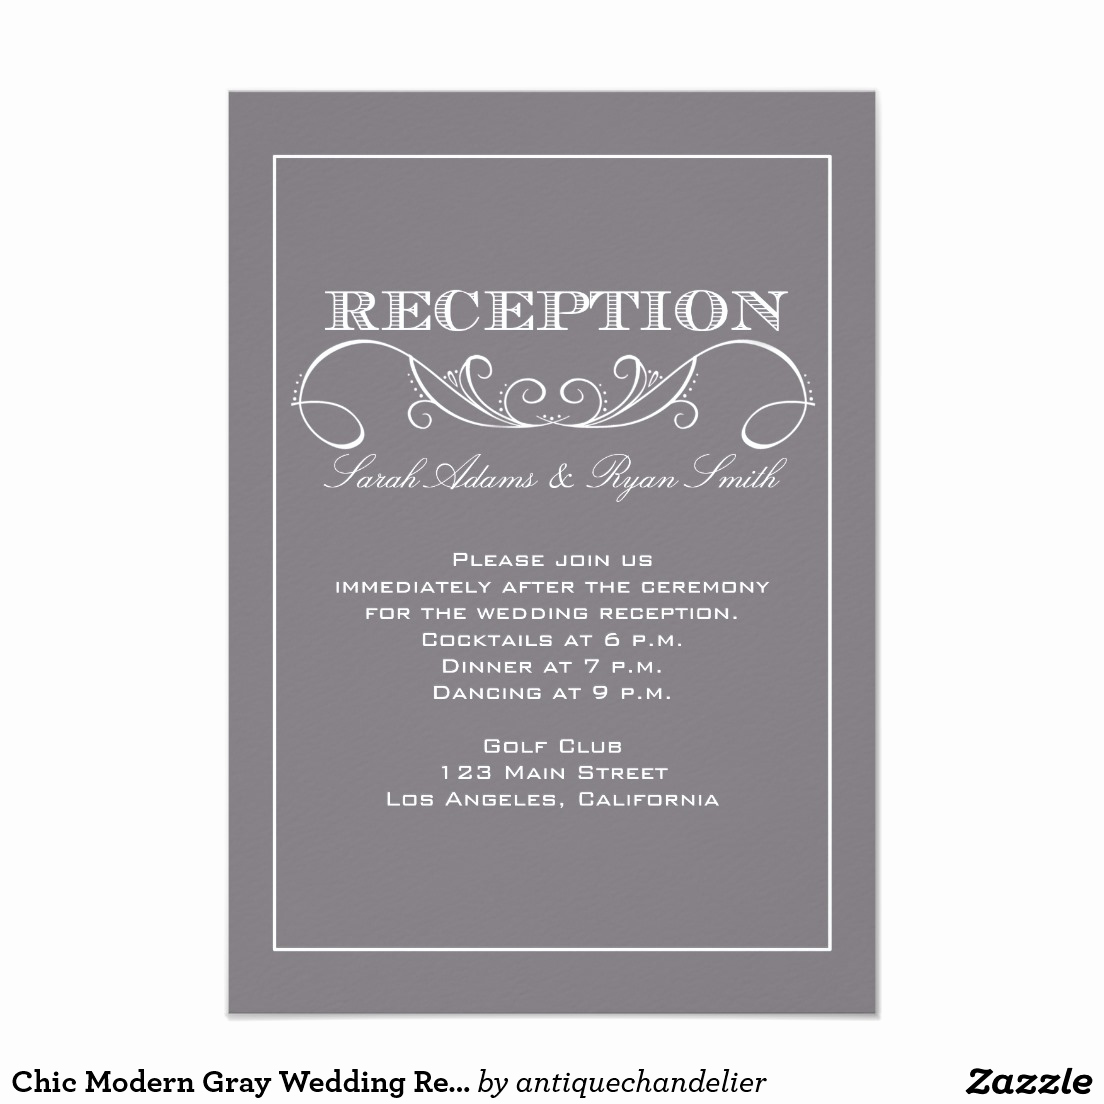 Wedding Reception Invitation Wording Samples Fresh Post Wedding Reception Invitation Wording Samples